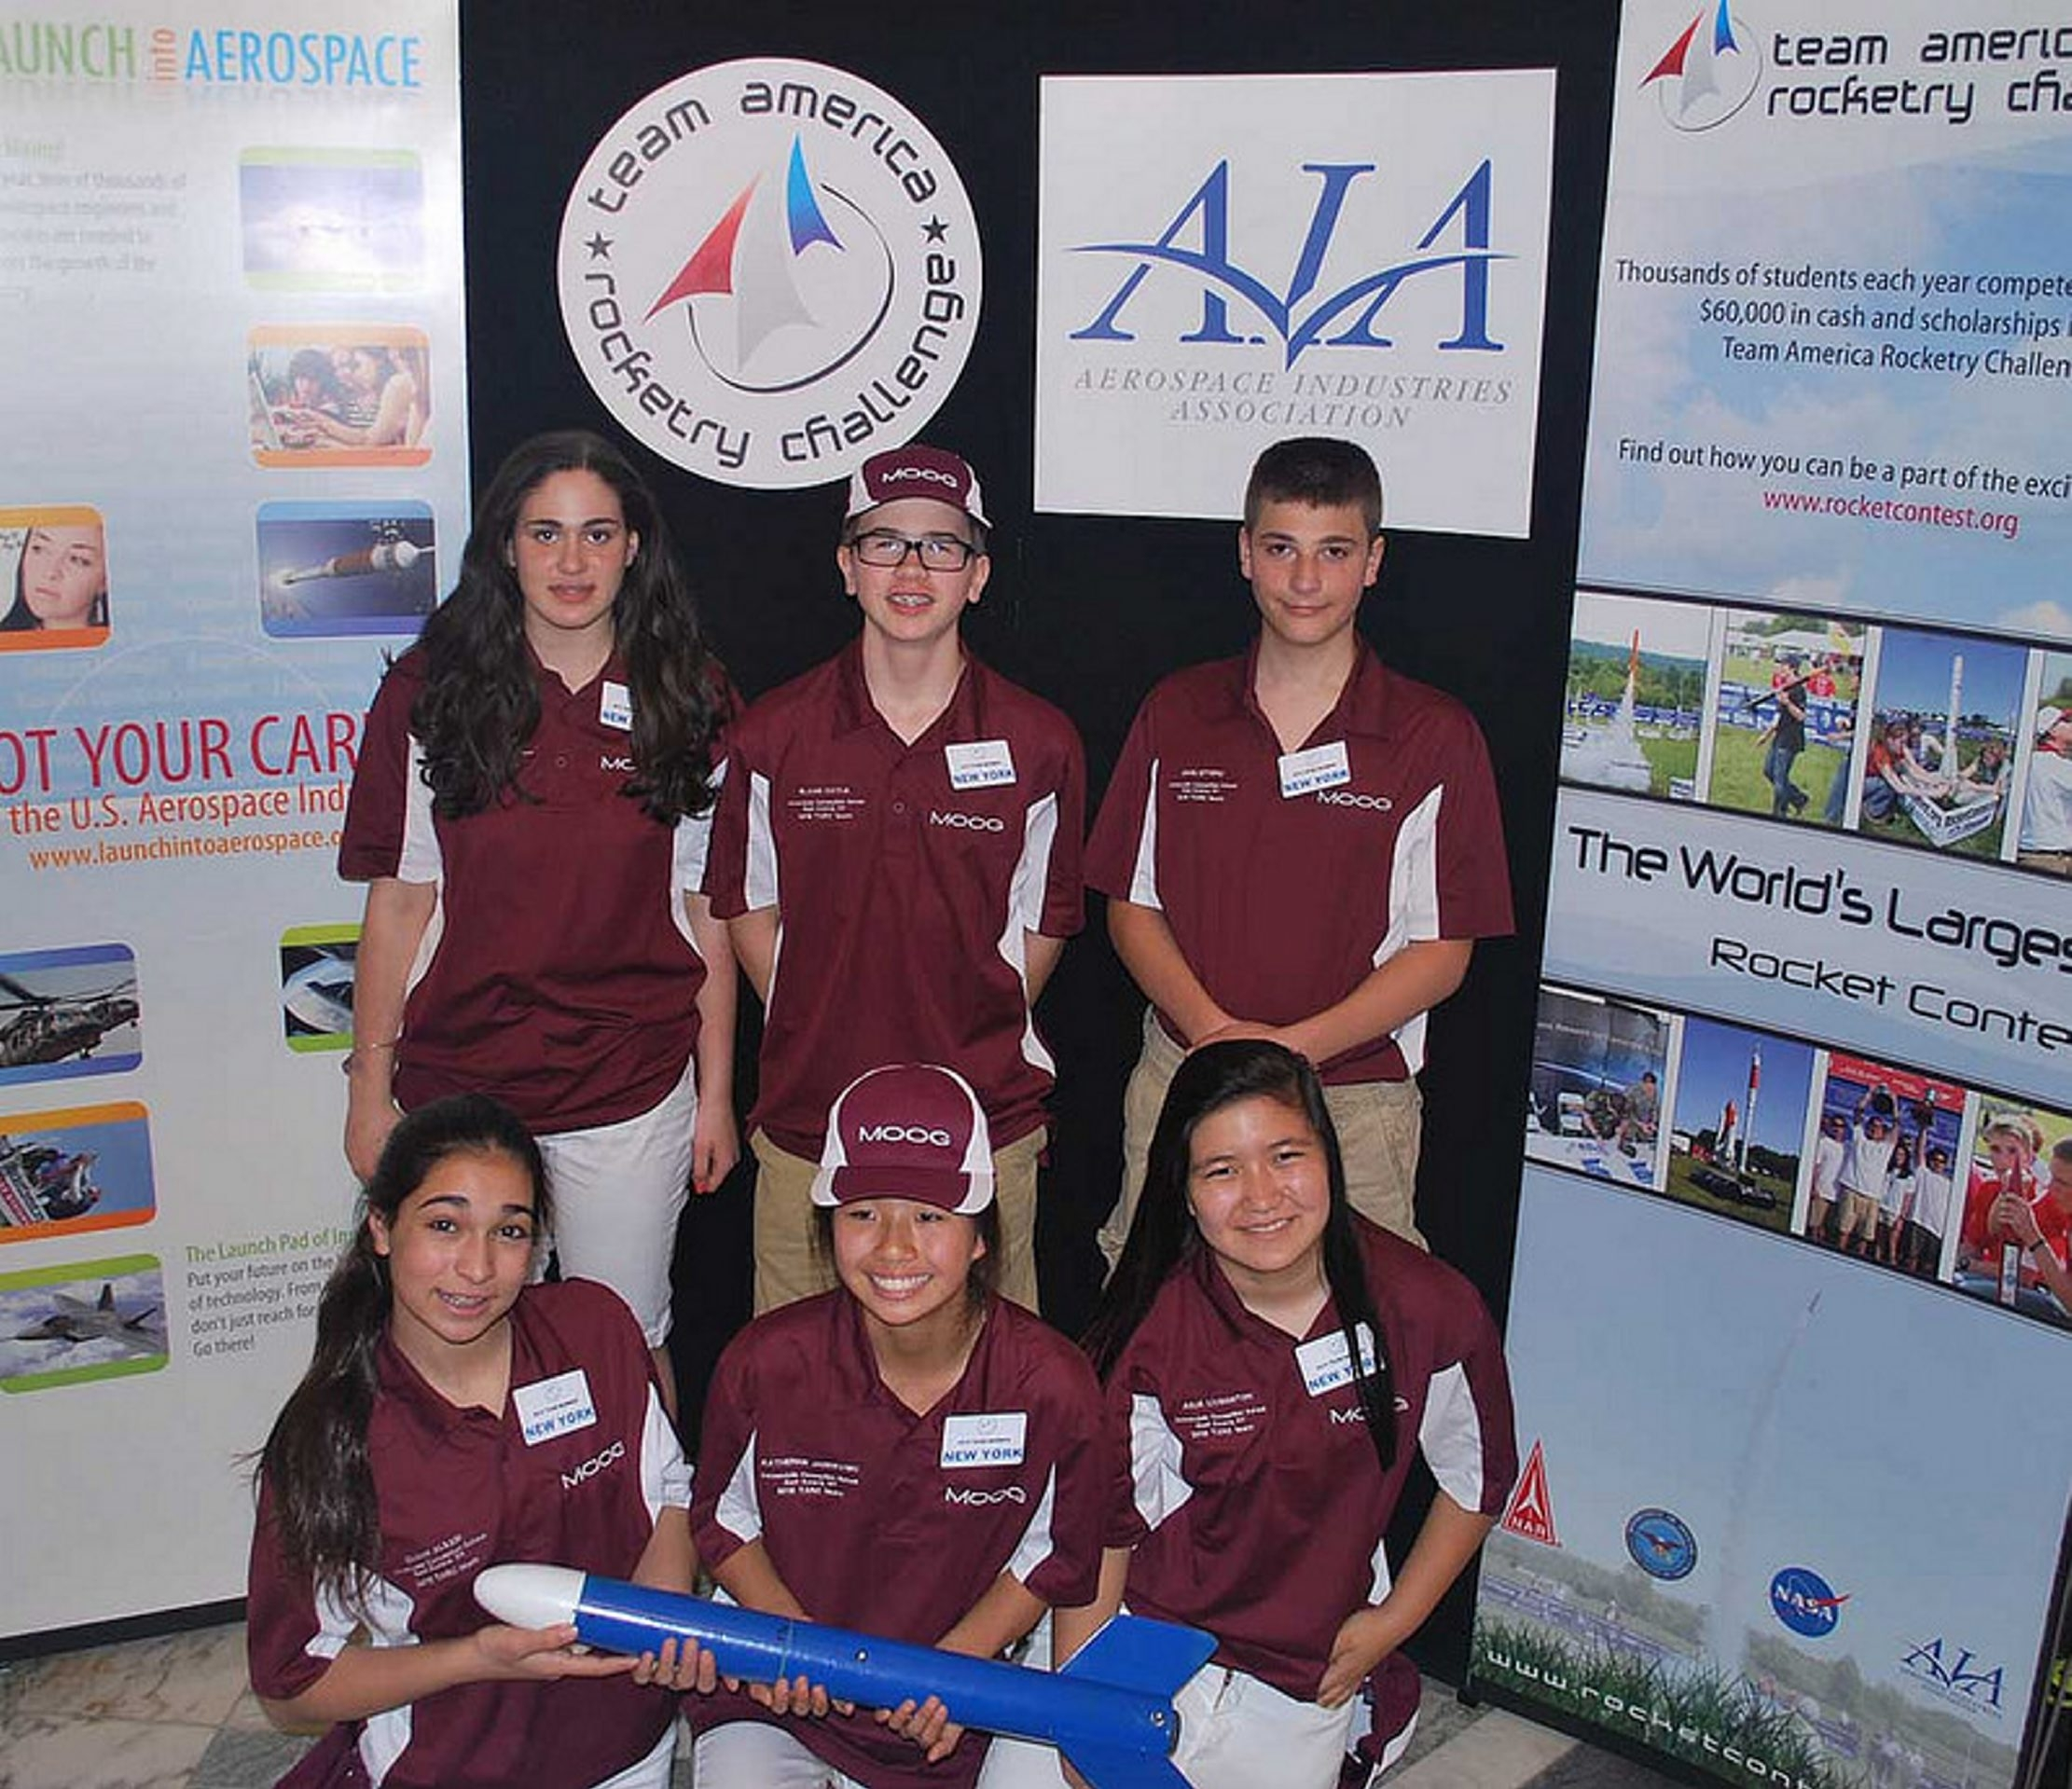 One of two teams from Immaculate Conception School in East Aurora made it to the second round of the Team America Rocketry Challenge. Top row, from left, Caroline Zanghi, Blaise Doyle and John Ettipio. Bottom row,  Olivia Alessi, Katherine Jancevski and Julia Livingston.